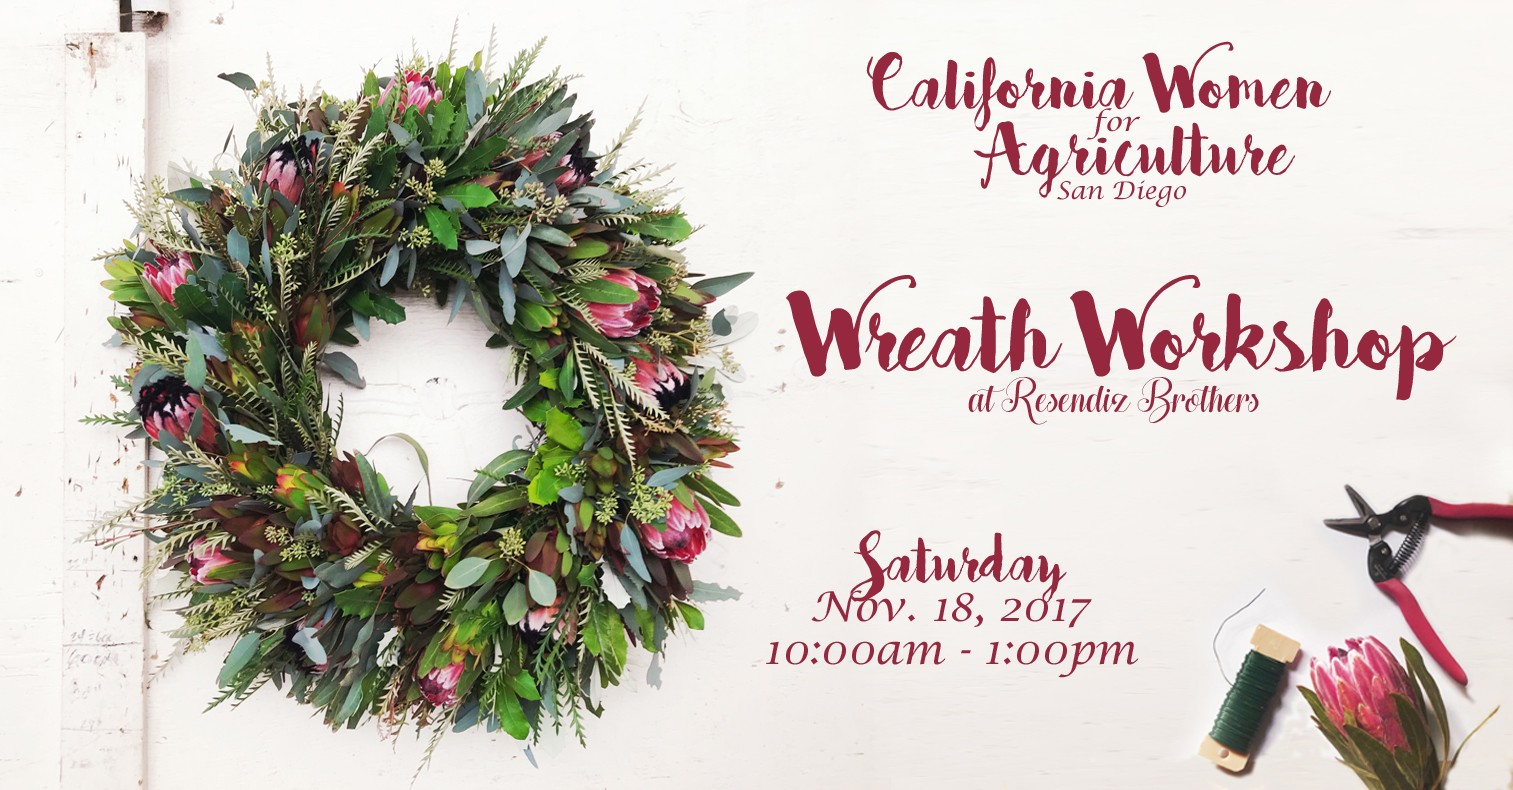 CWA Wreath Workshop